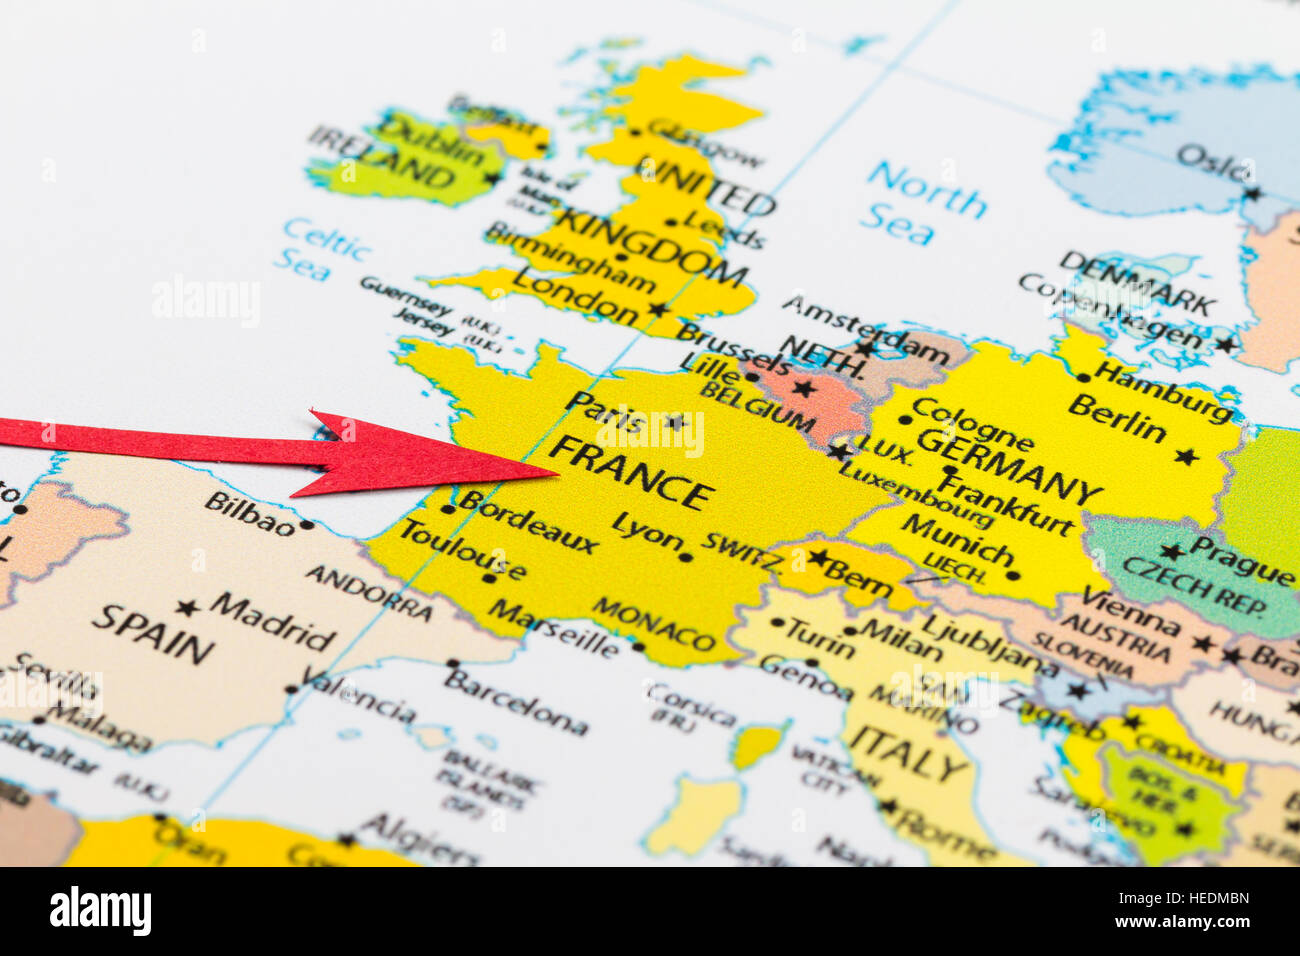 France On The Map Of Europe.Red Arrow Pointing France On The Map Of Europe Continent Stock Photo